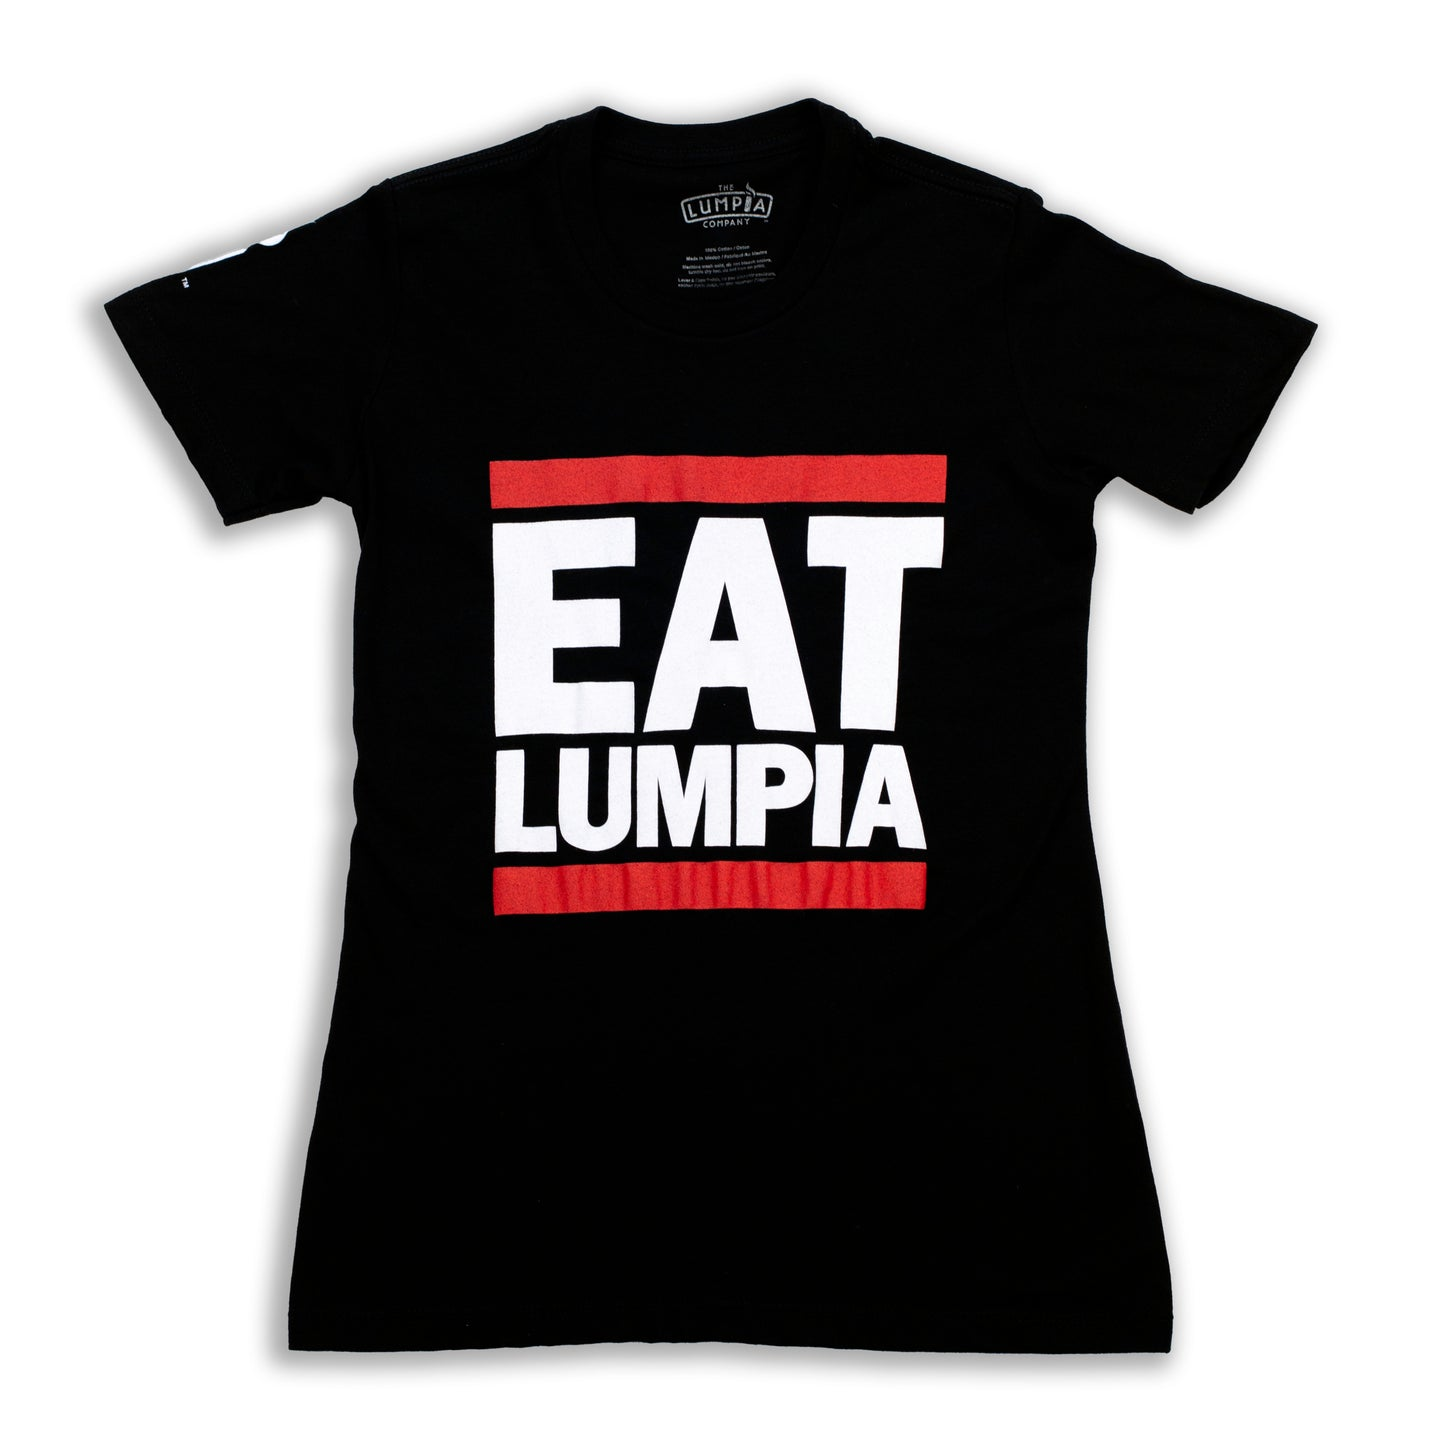 EAT LUMPIA Women's Size